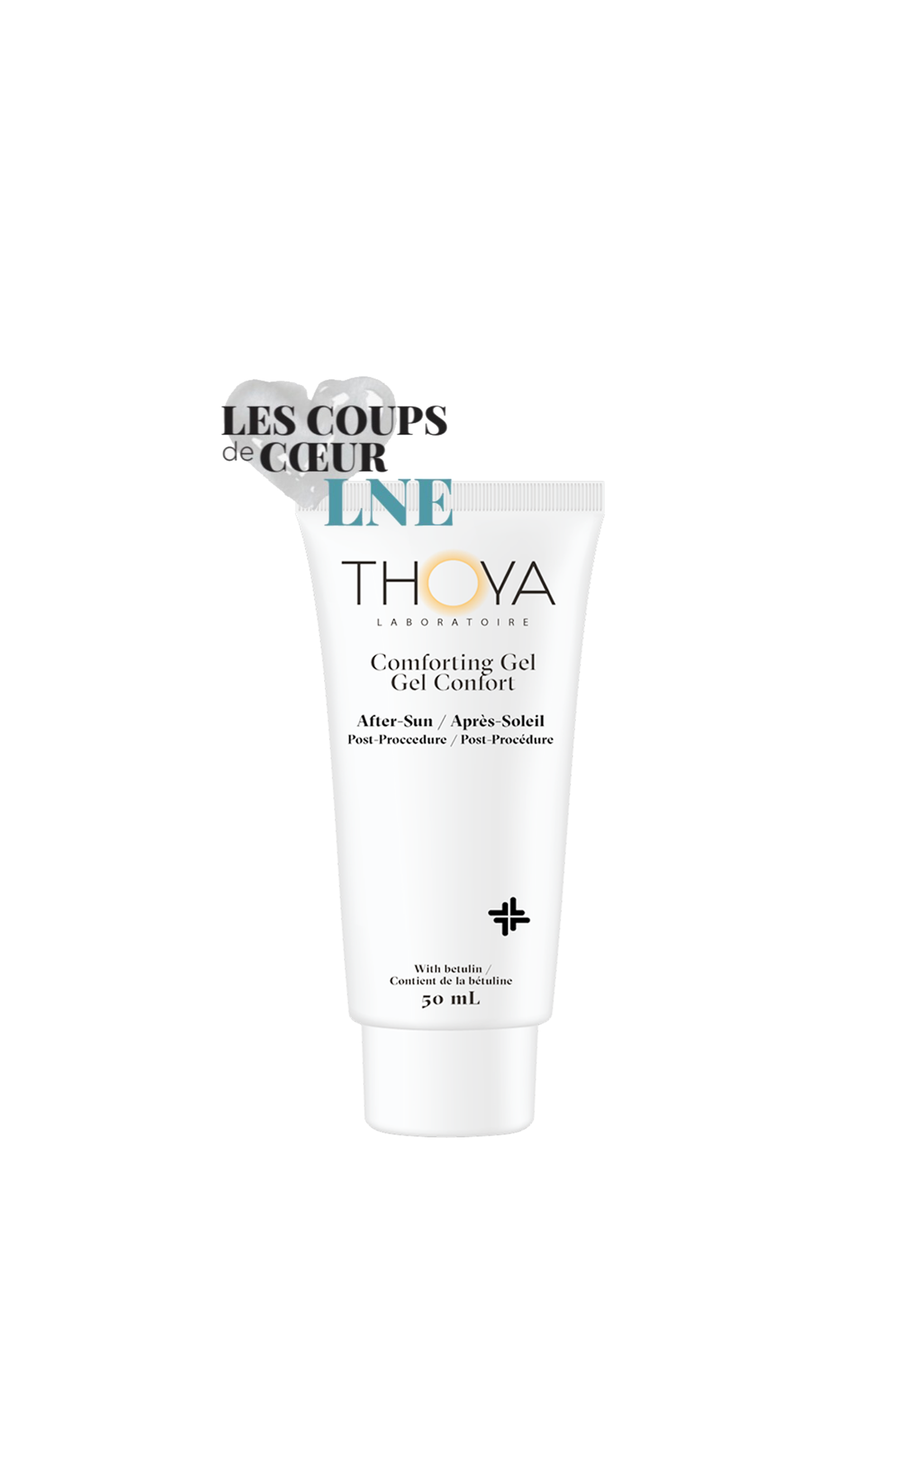 Thoya All Comforting Gel - After sun – Post procedure - Best all natural skincare - Hypoallergernic - Dermatologist tested - Fragrance free